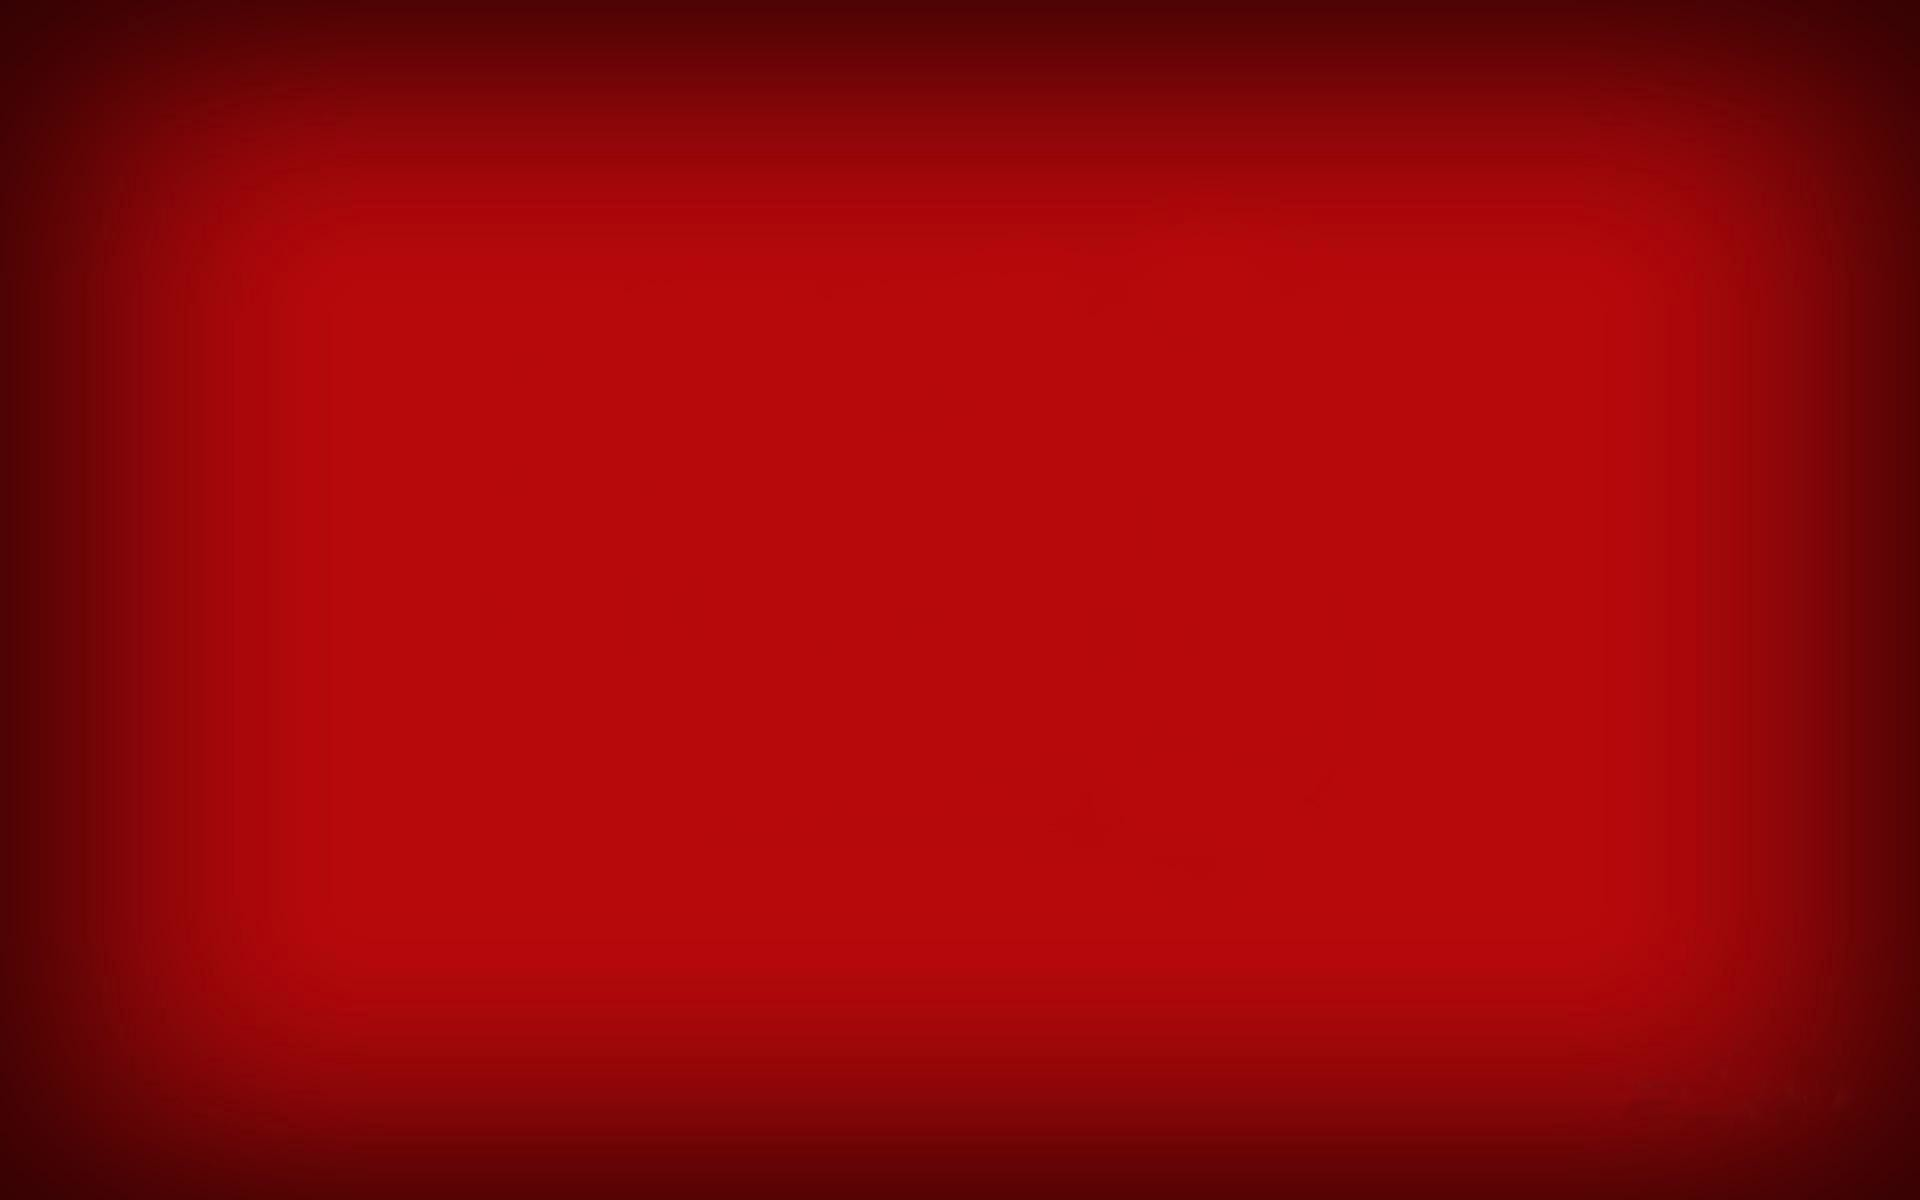 Windows-7-solid-color-background-red-computer-wallpaper-